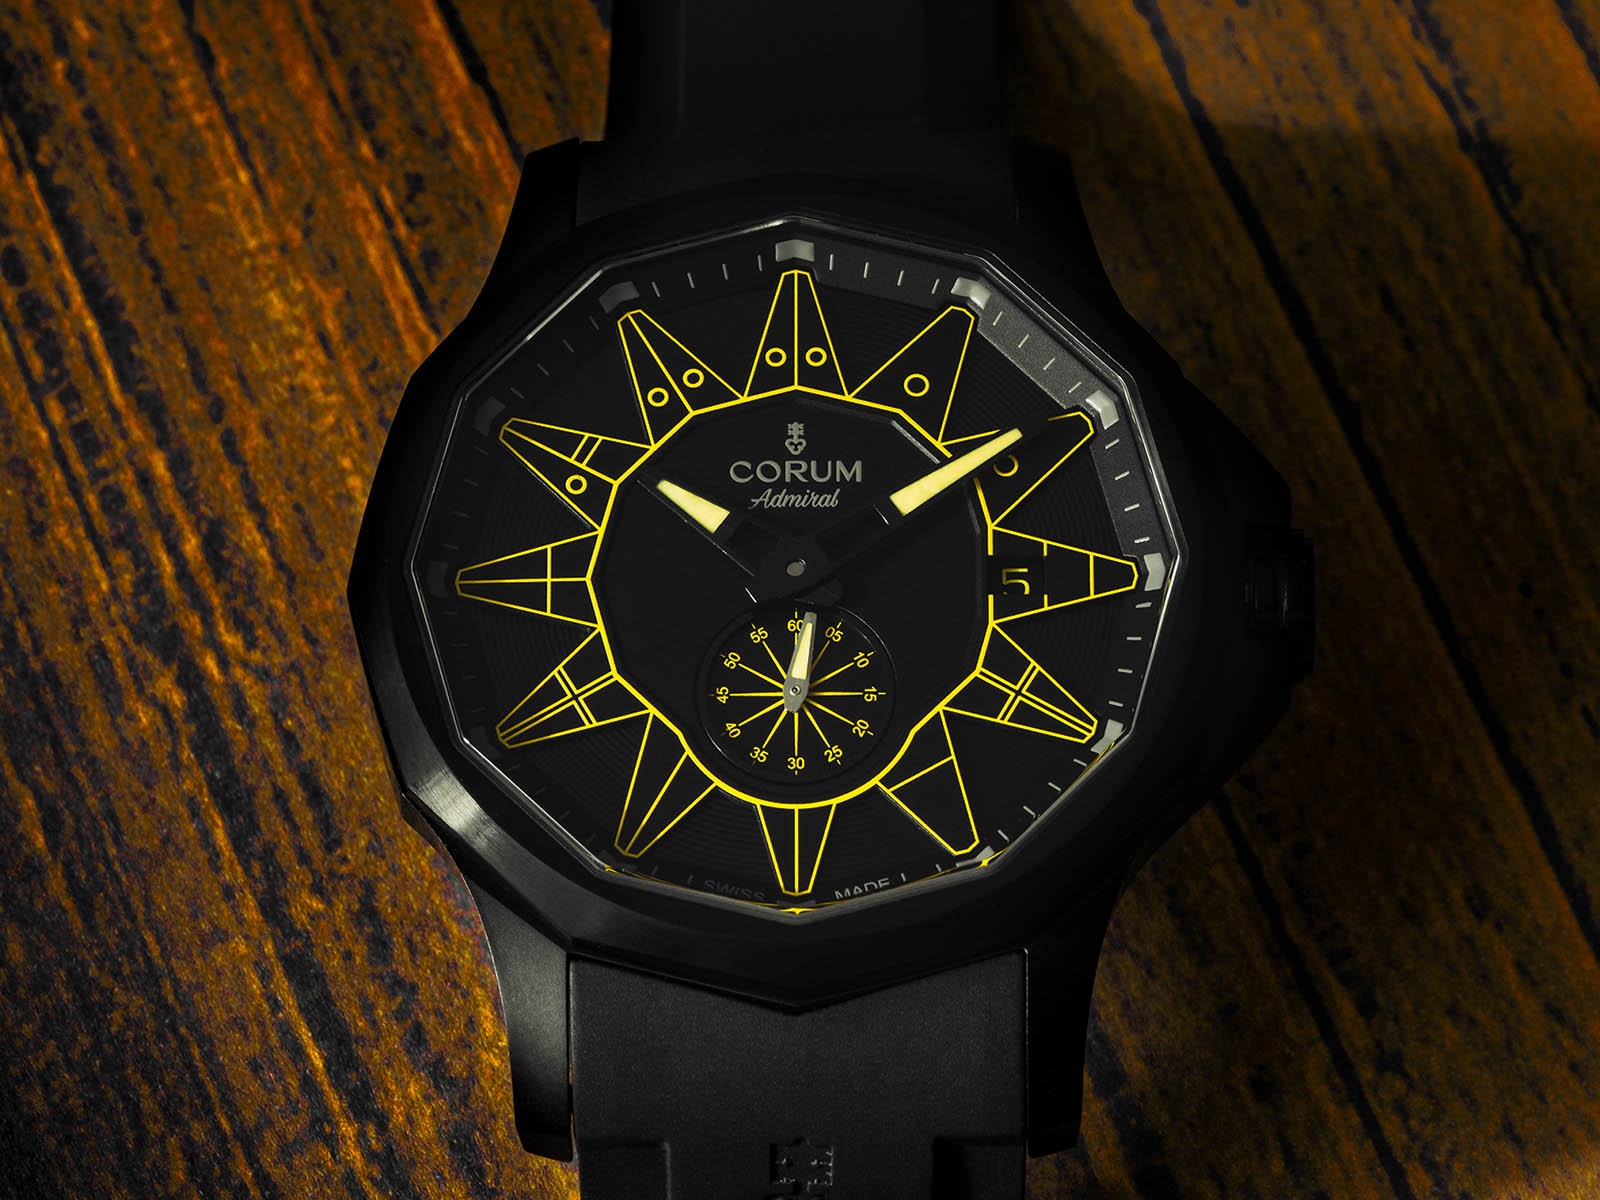 a395-04008-395-111-98-f371-bj12-corum-admiral-42-automatic-all-black-1.jpg